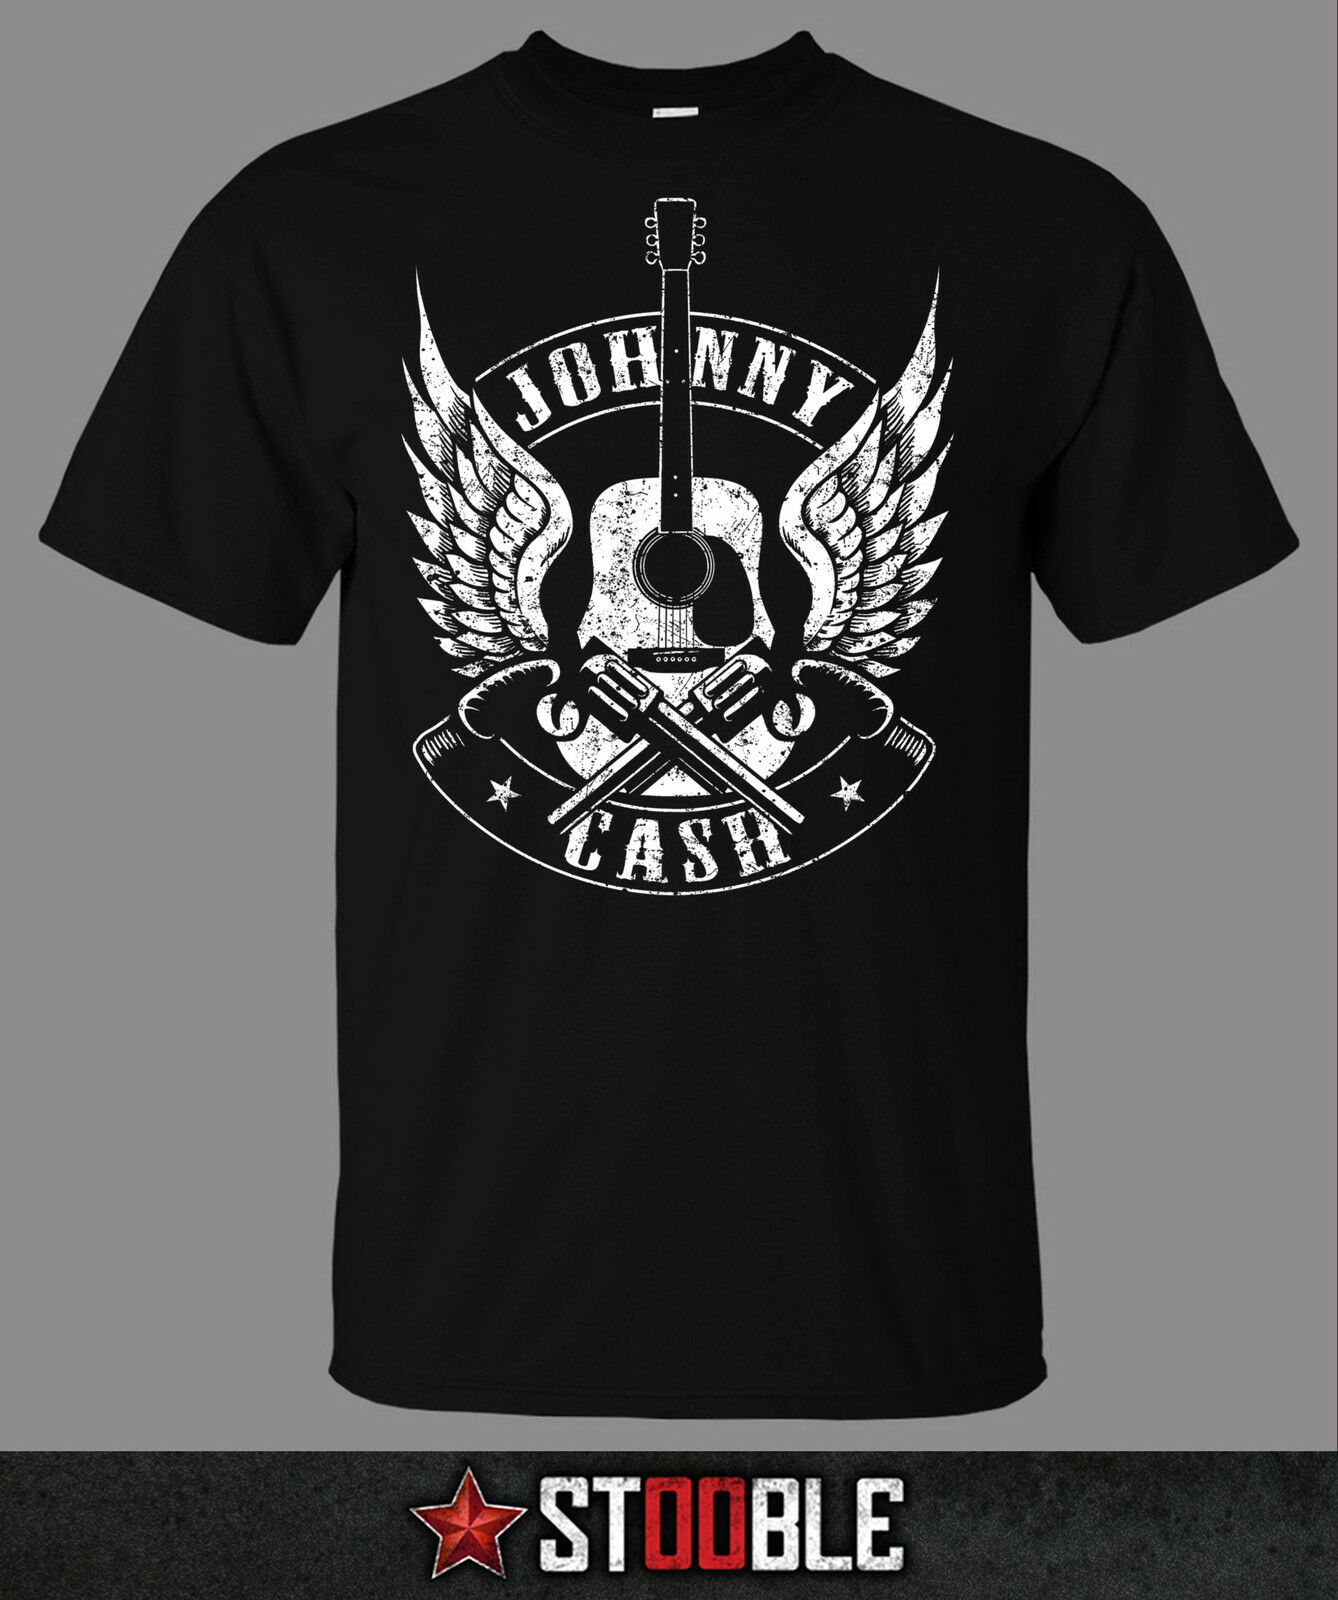 Johnny Cash Black T Shirt Direct from StockistMens T Shirt Summer O Neck 100 Cotton cheap wholesalemens tee shirts in T Shirts from Men 39 s Clothing